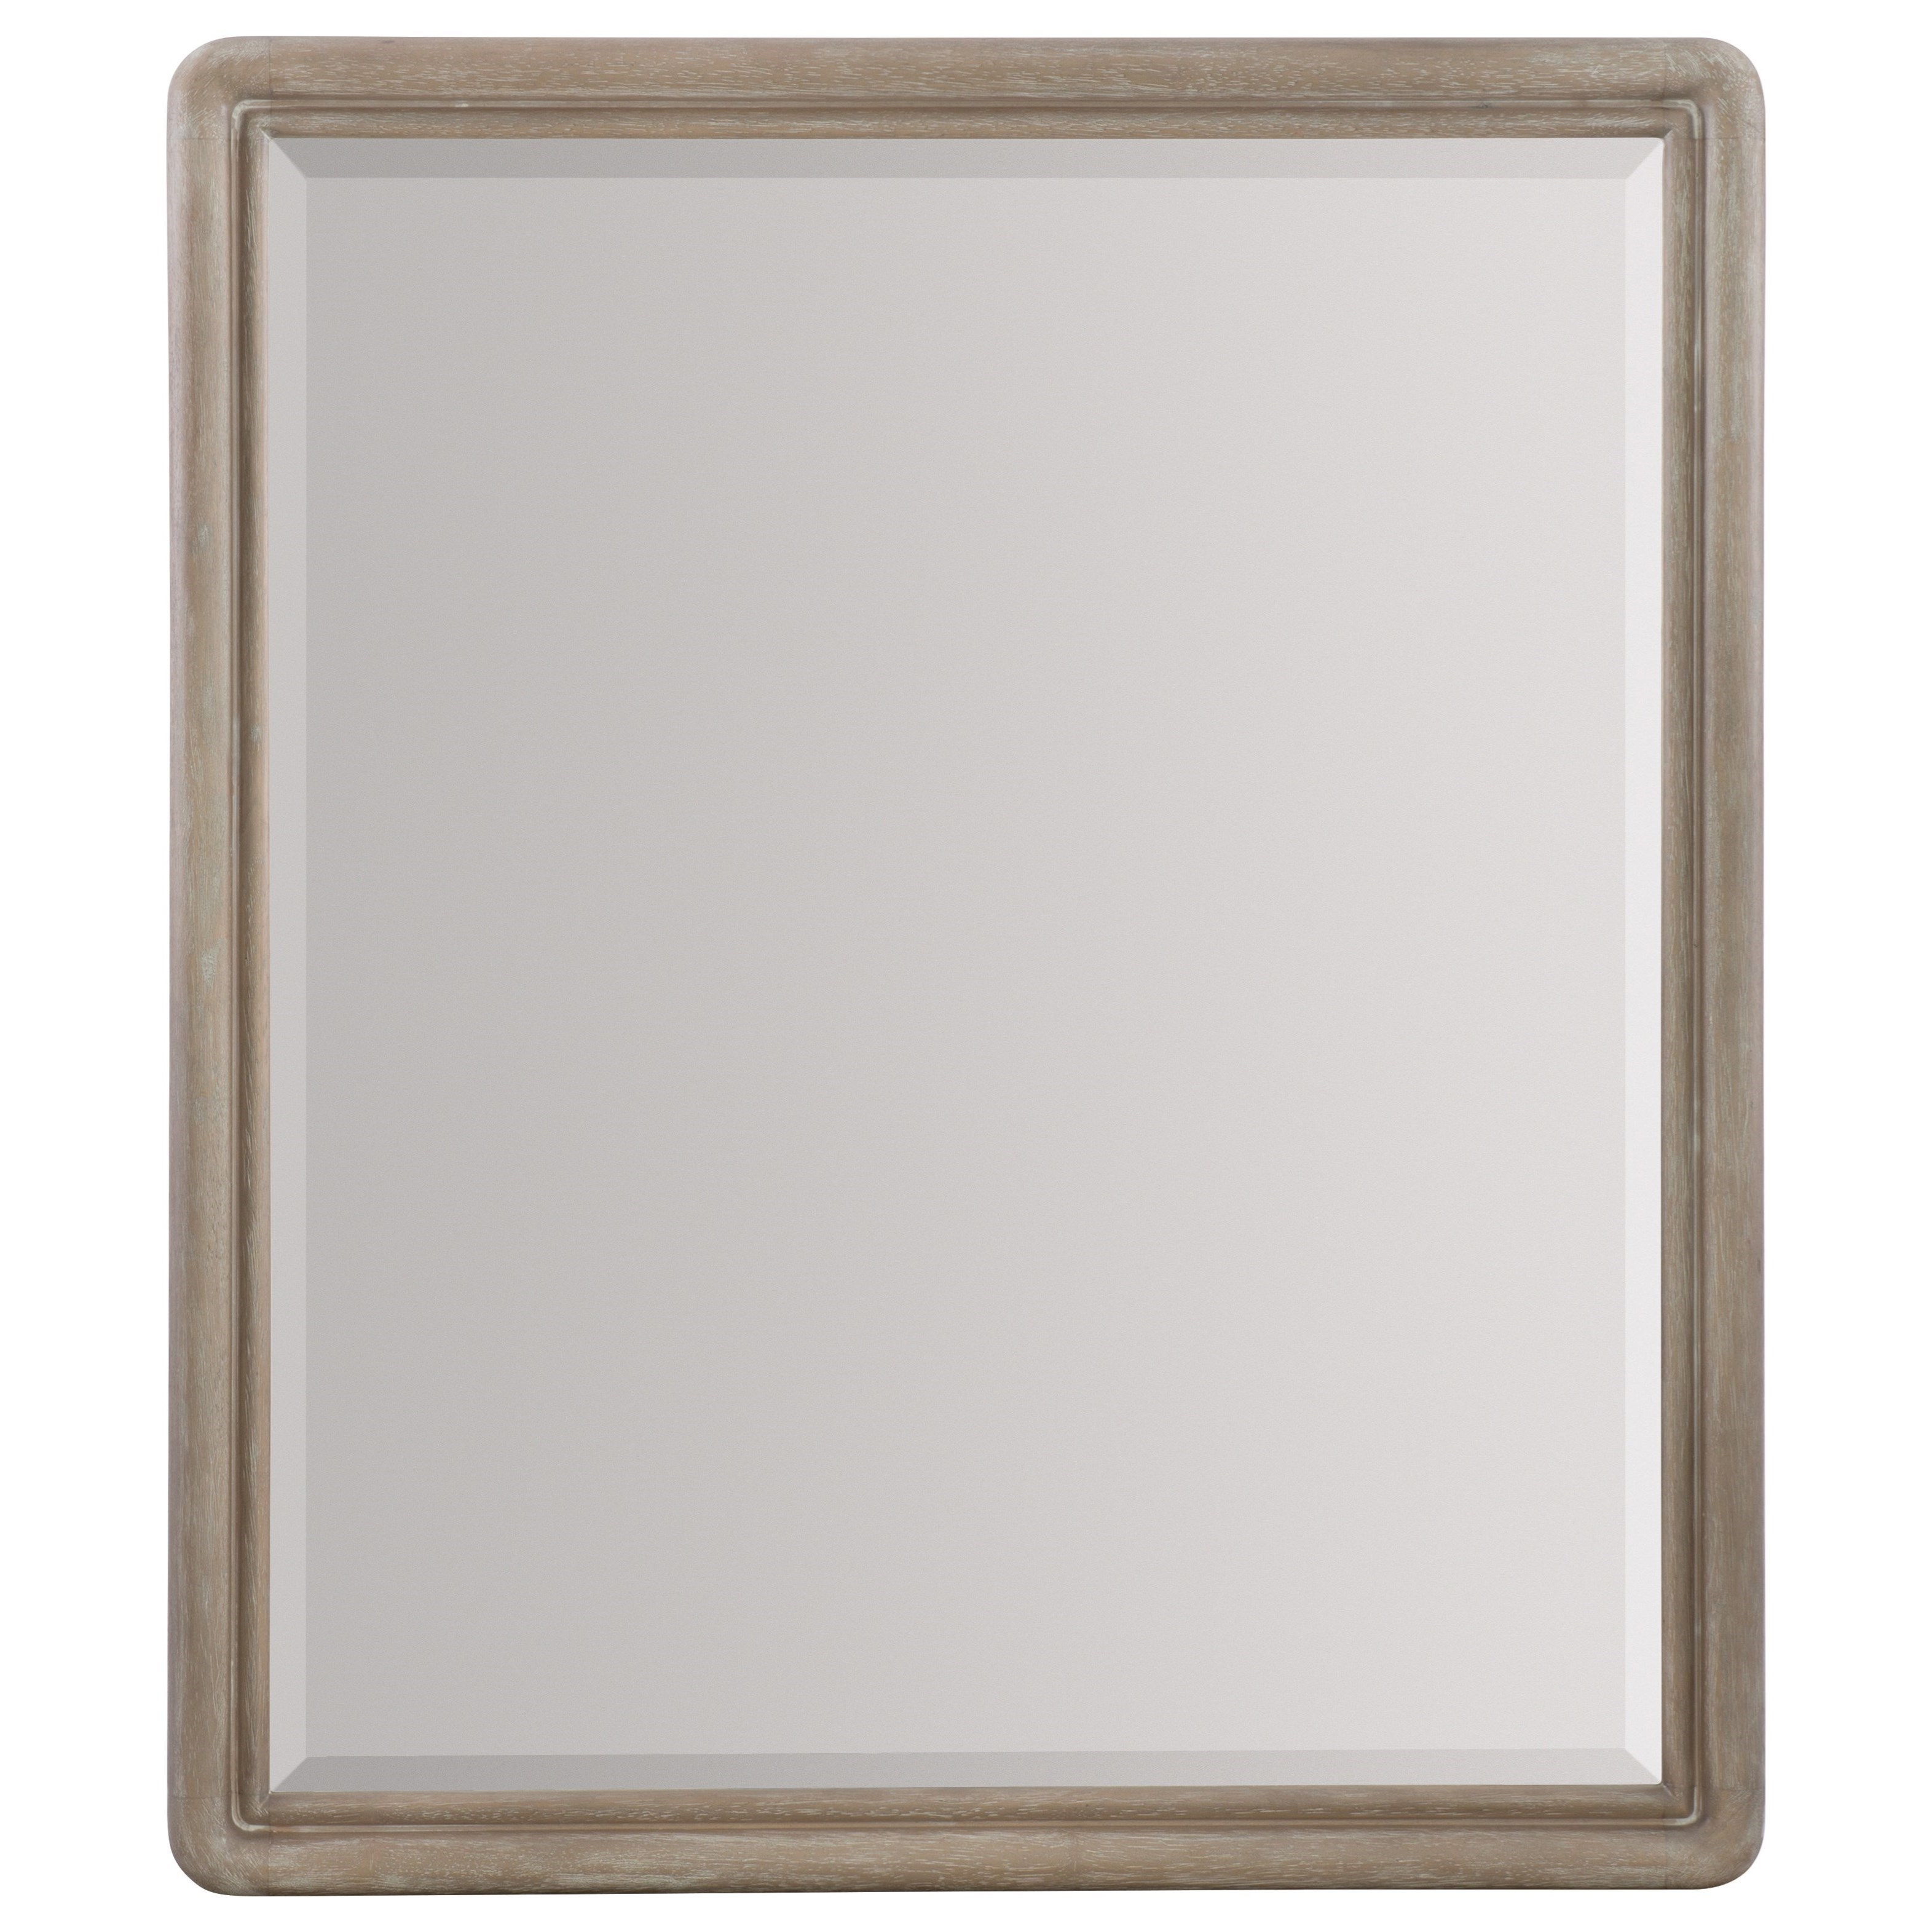 Affinity Mirror by Hooker Furniture at Baer's Furniture